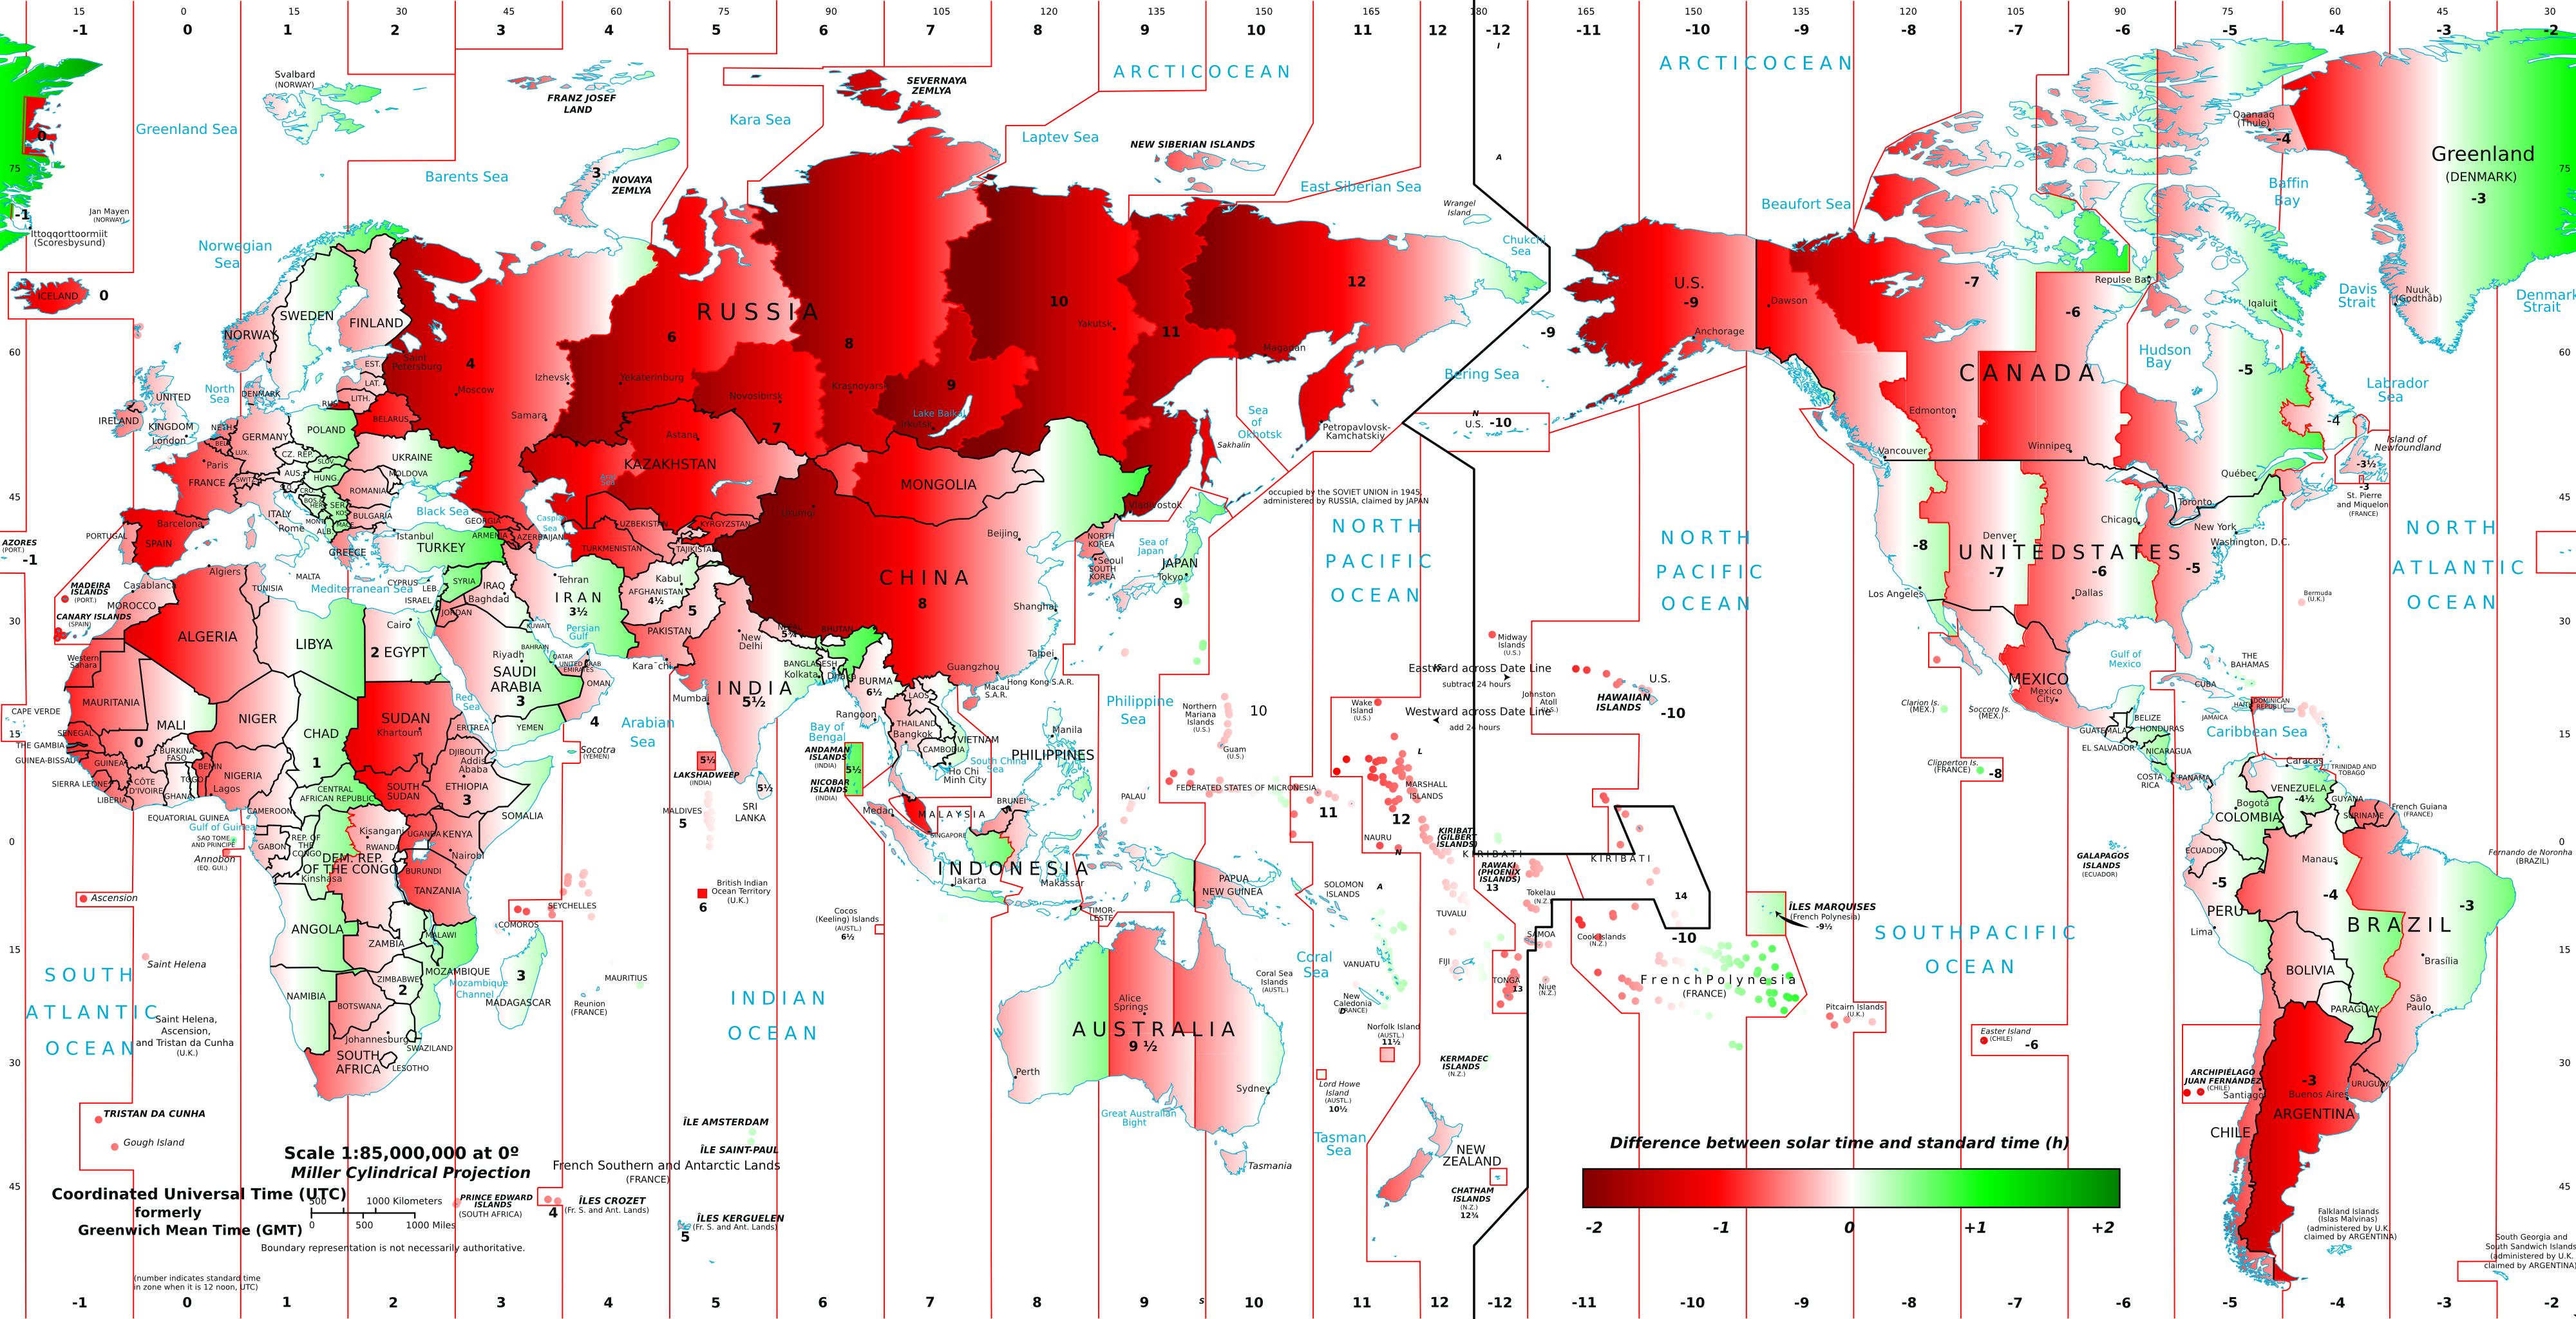 South Dakota Time Zone Map Reference Map Of Tennessee Usa - Time zone map south dakota